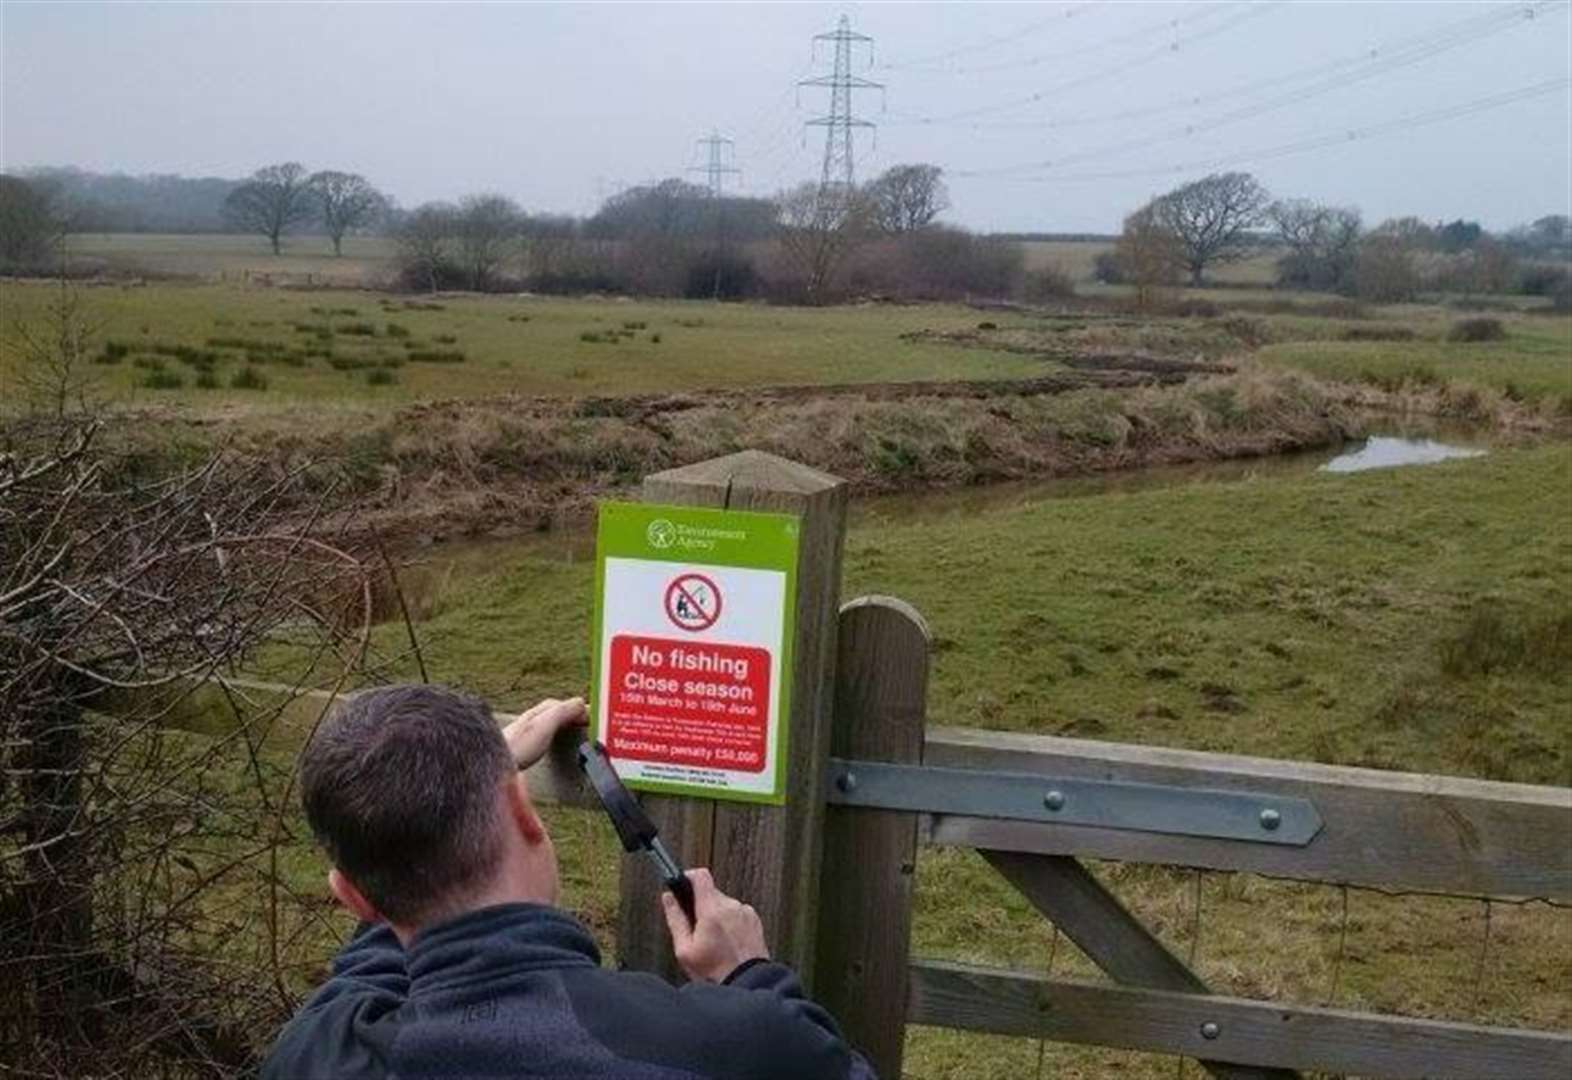 Fenland anglers urged to raise their thoughts on close season, says Environment Agency